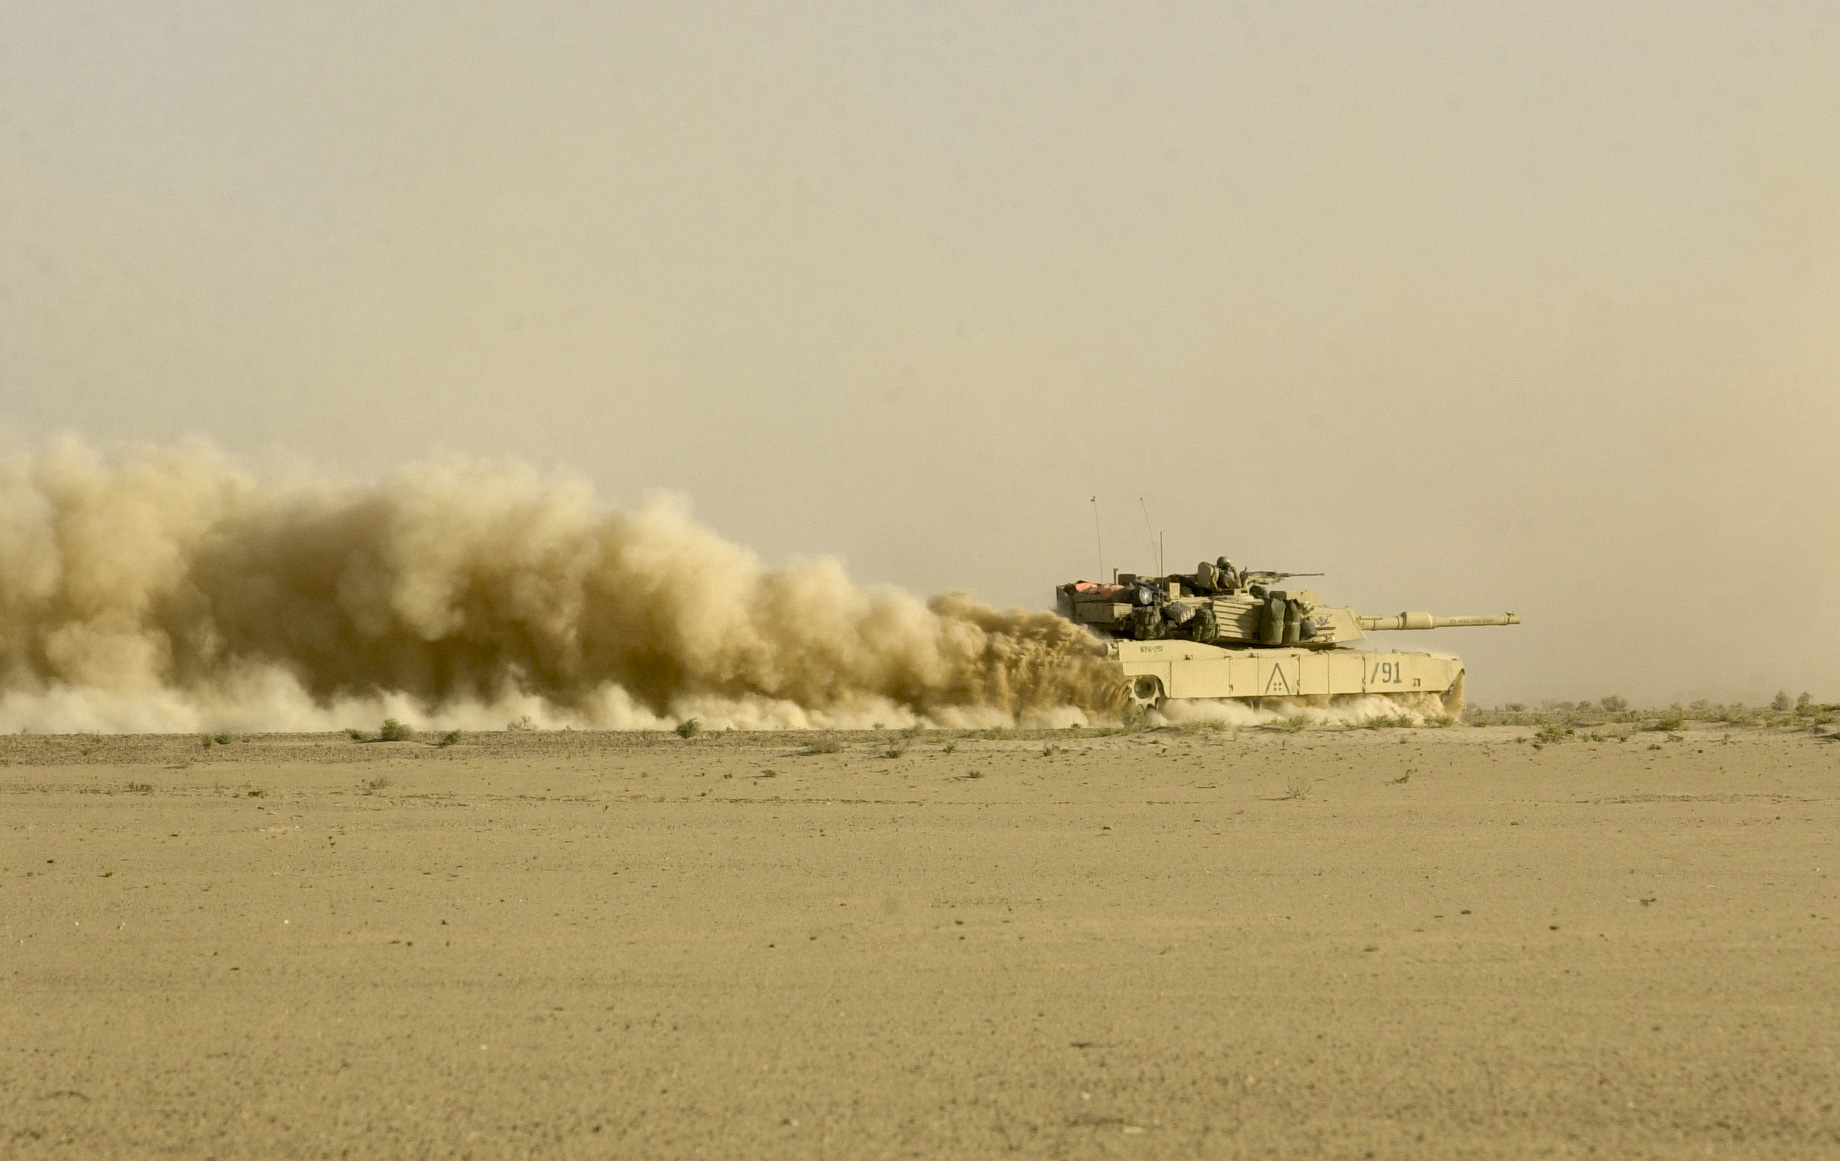 Troops from the U.S. Army's 3rd Squadron, 7th Cavalry Regiment on the move during invasion of Iraq on April 2, 2003. (Warren Zinn/Army Times)